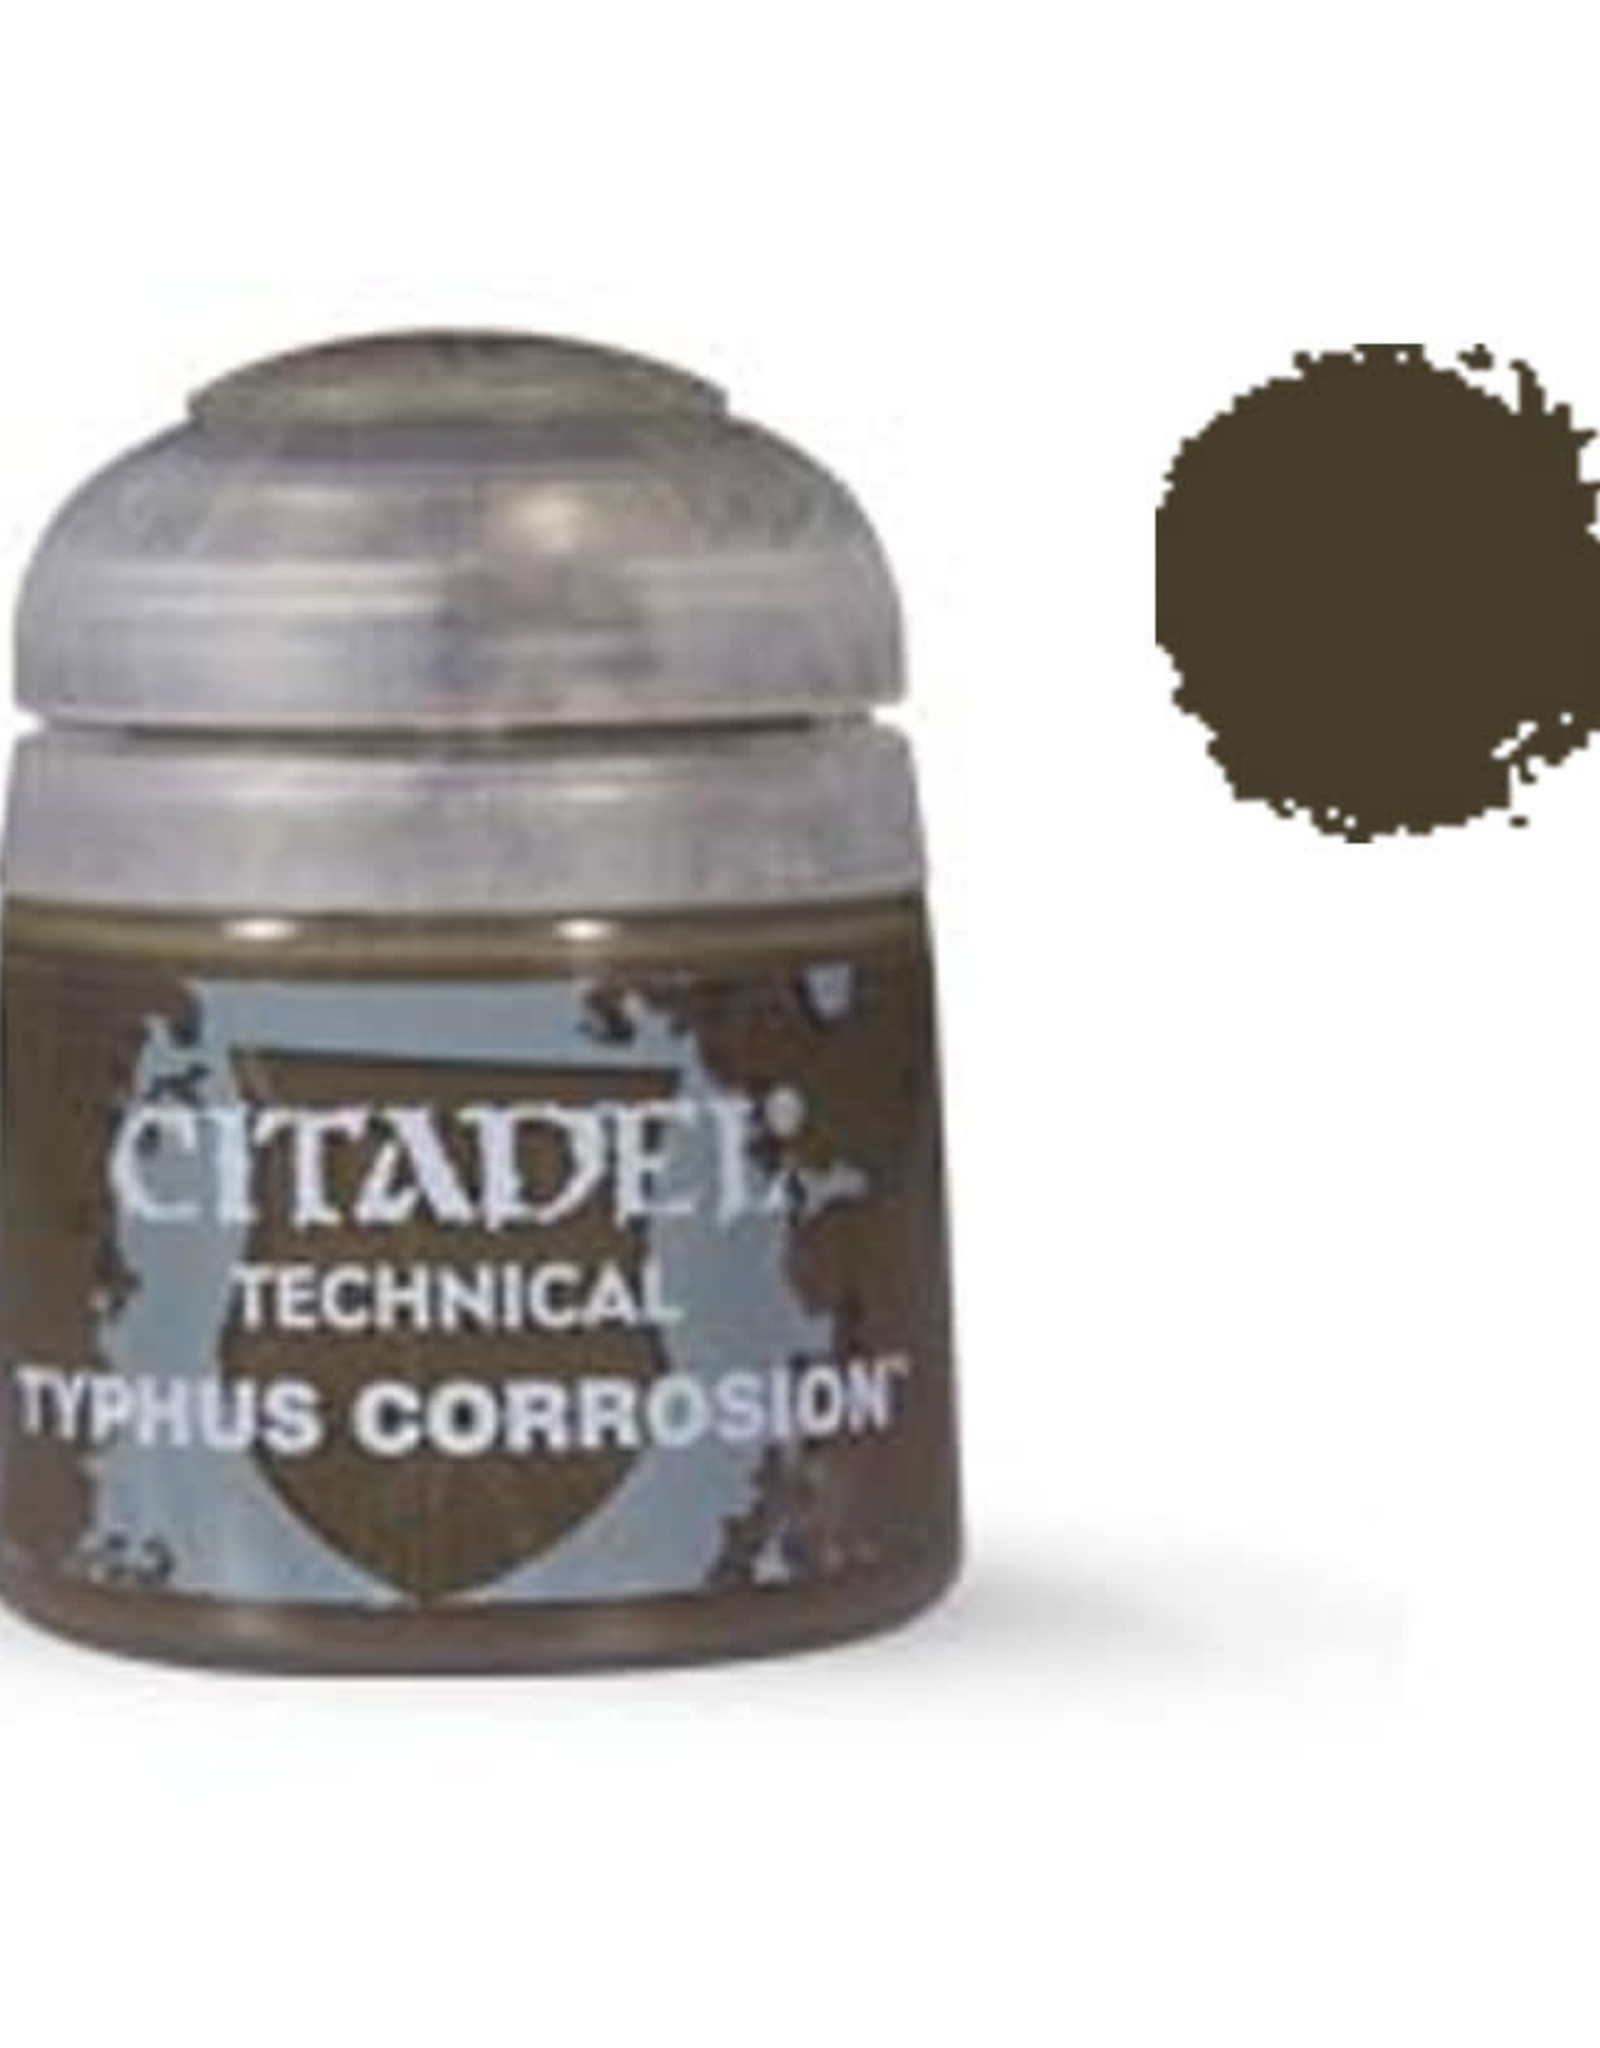 Games Workshop Citadel Paint: Technical - Typhus Corrosion